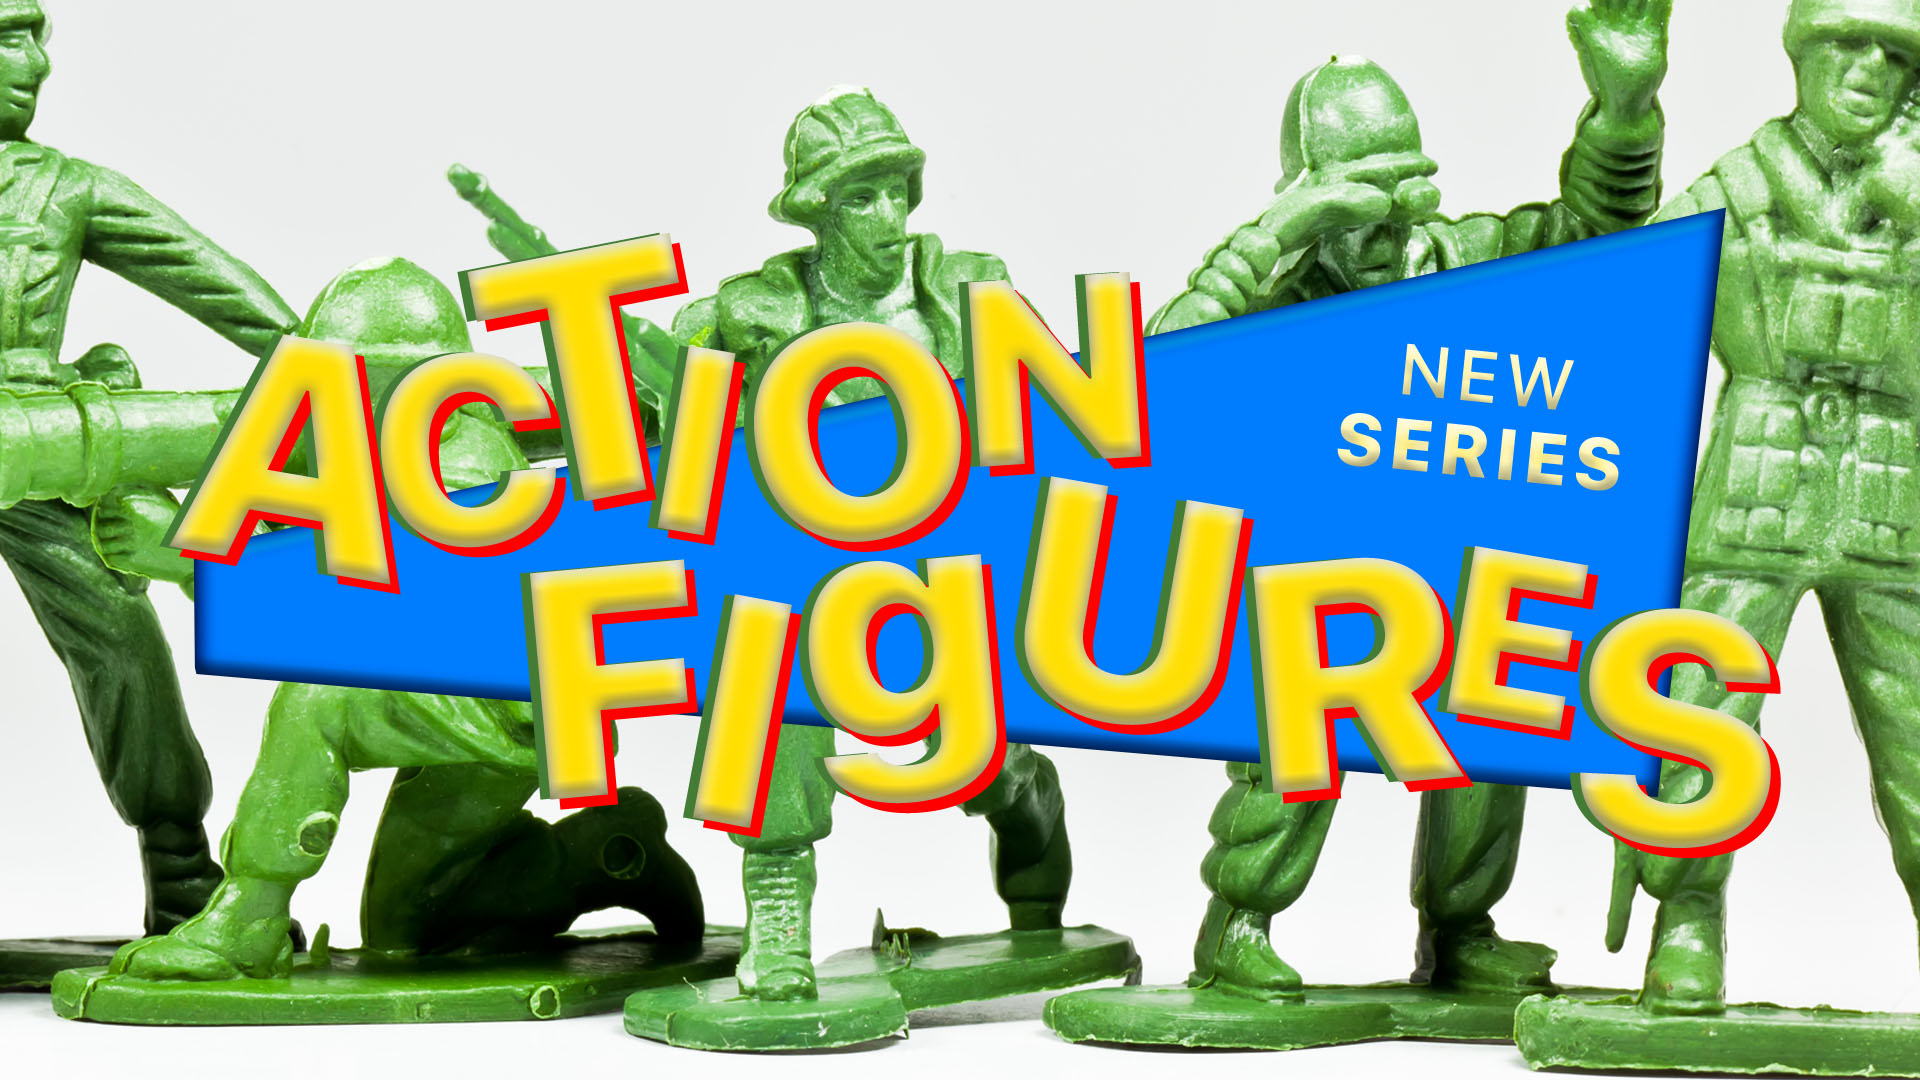 Pearlside - Action Figures